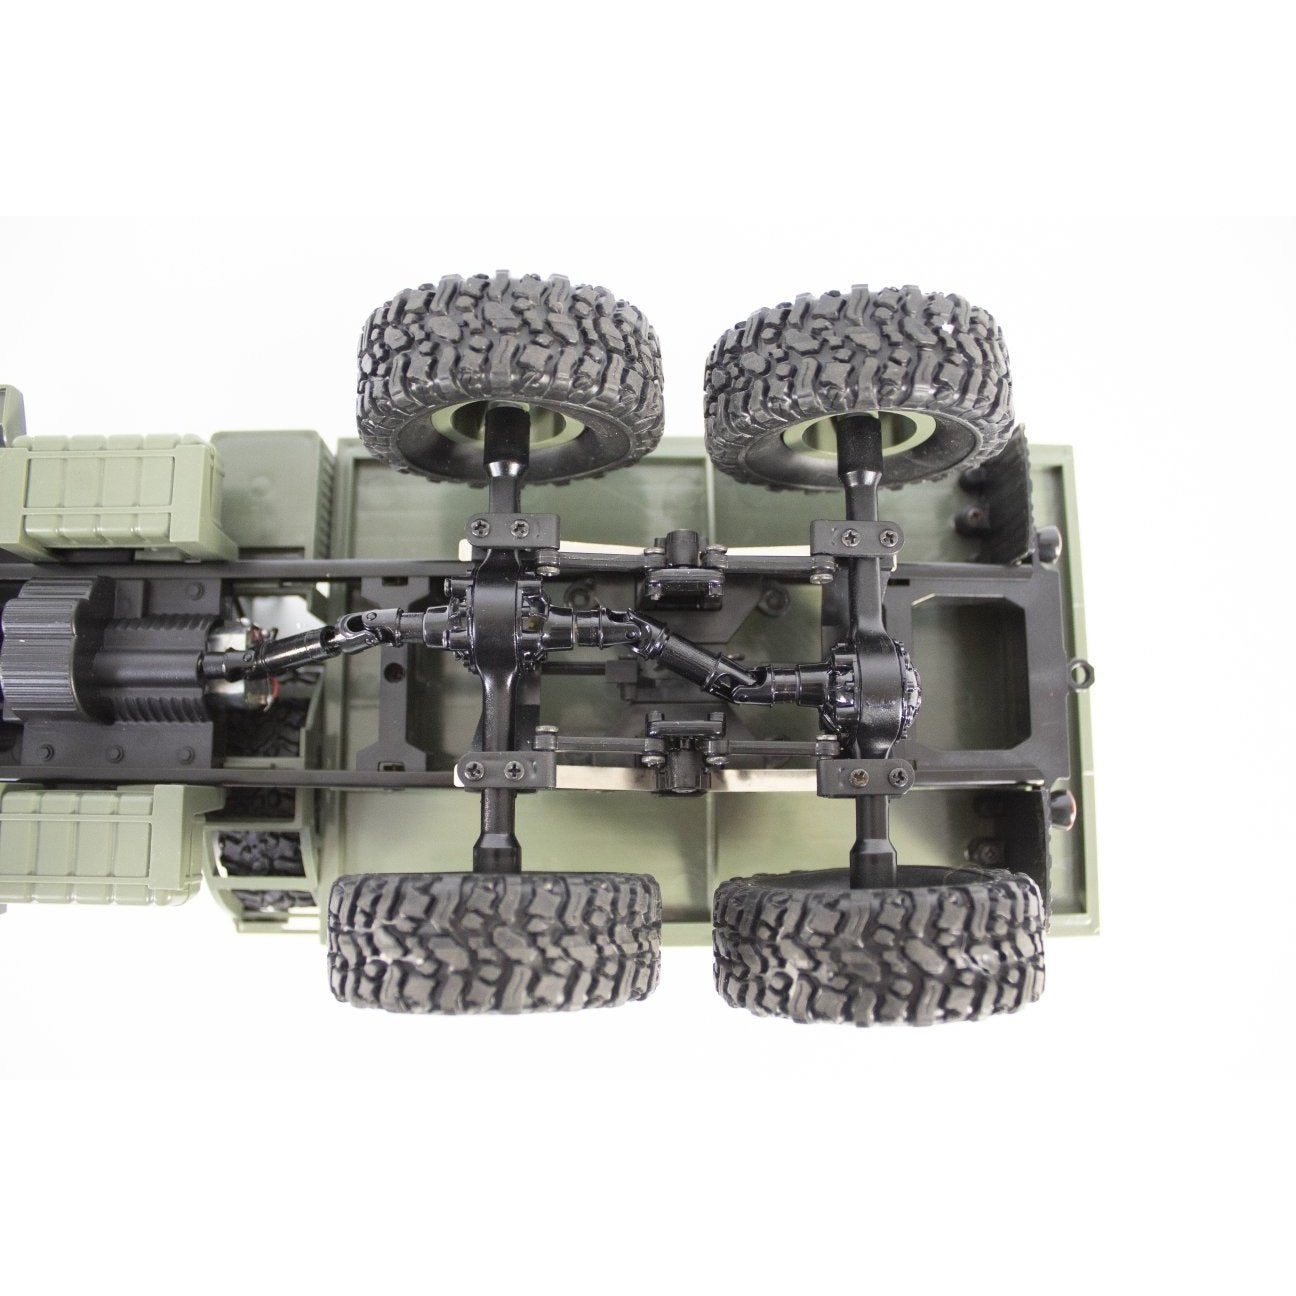 M35 6x6 1:16th Scale RTR 2.4GHz RC Truck